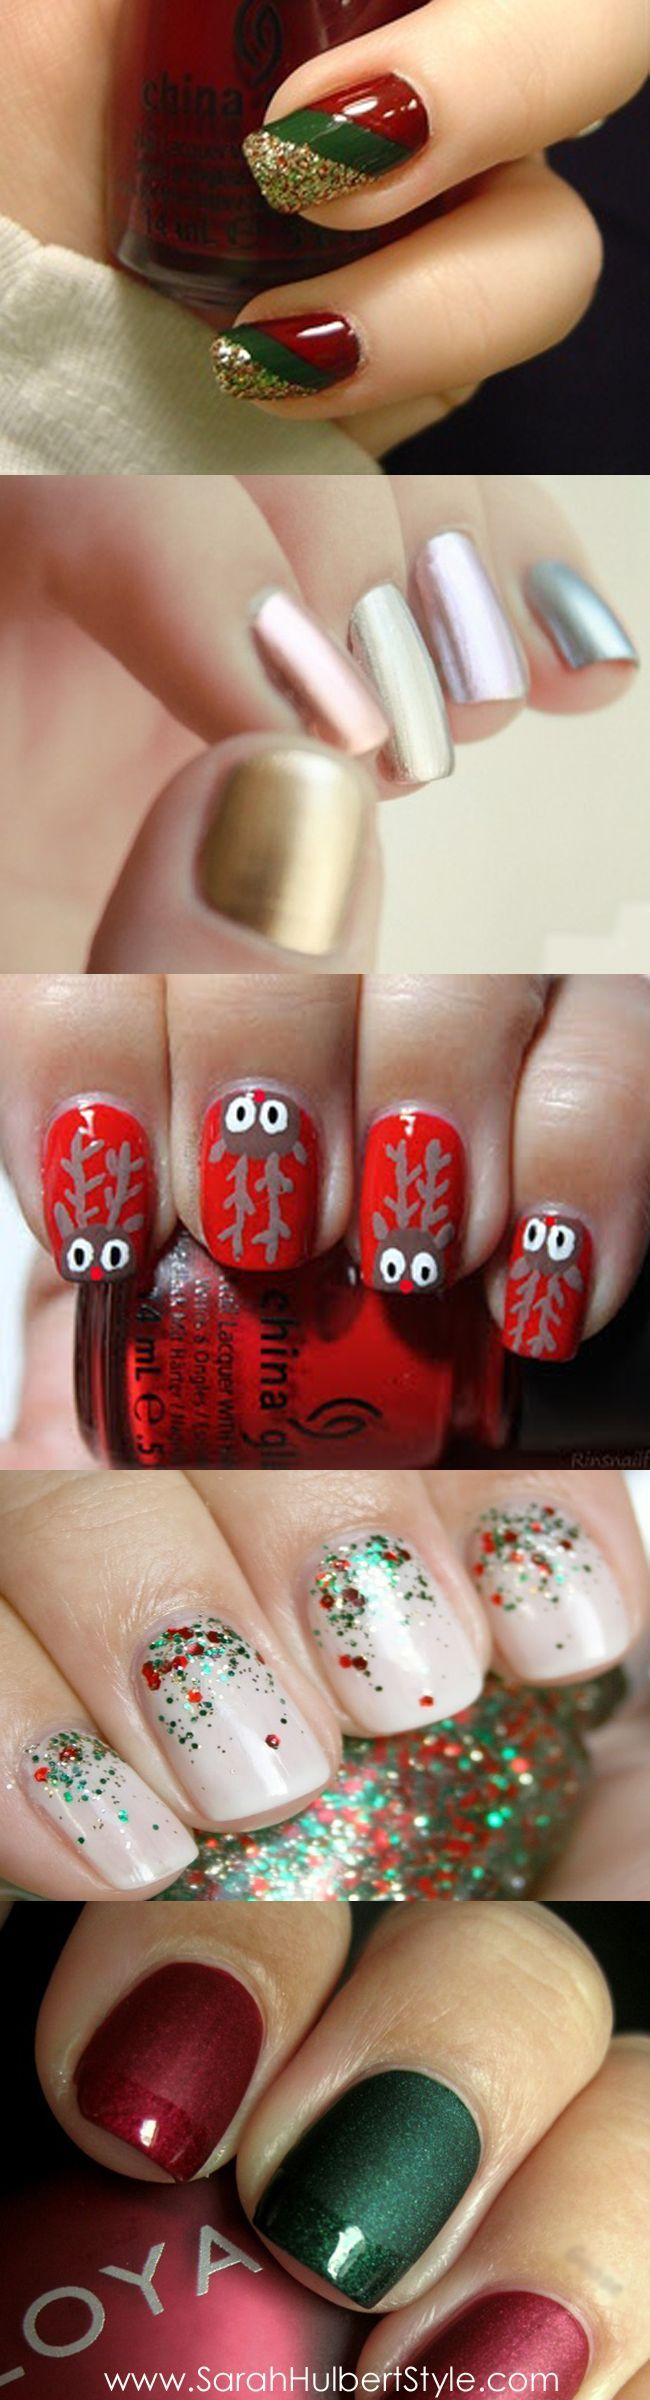 Holiday Party Style: Festive Manicures  #mani #nailpolish Nail Design, Nail Art, Nail Salon, Irvine, Newport Beach